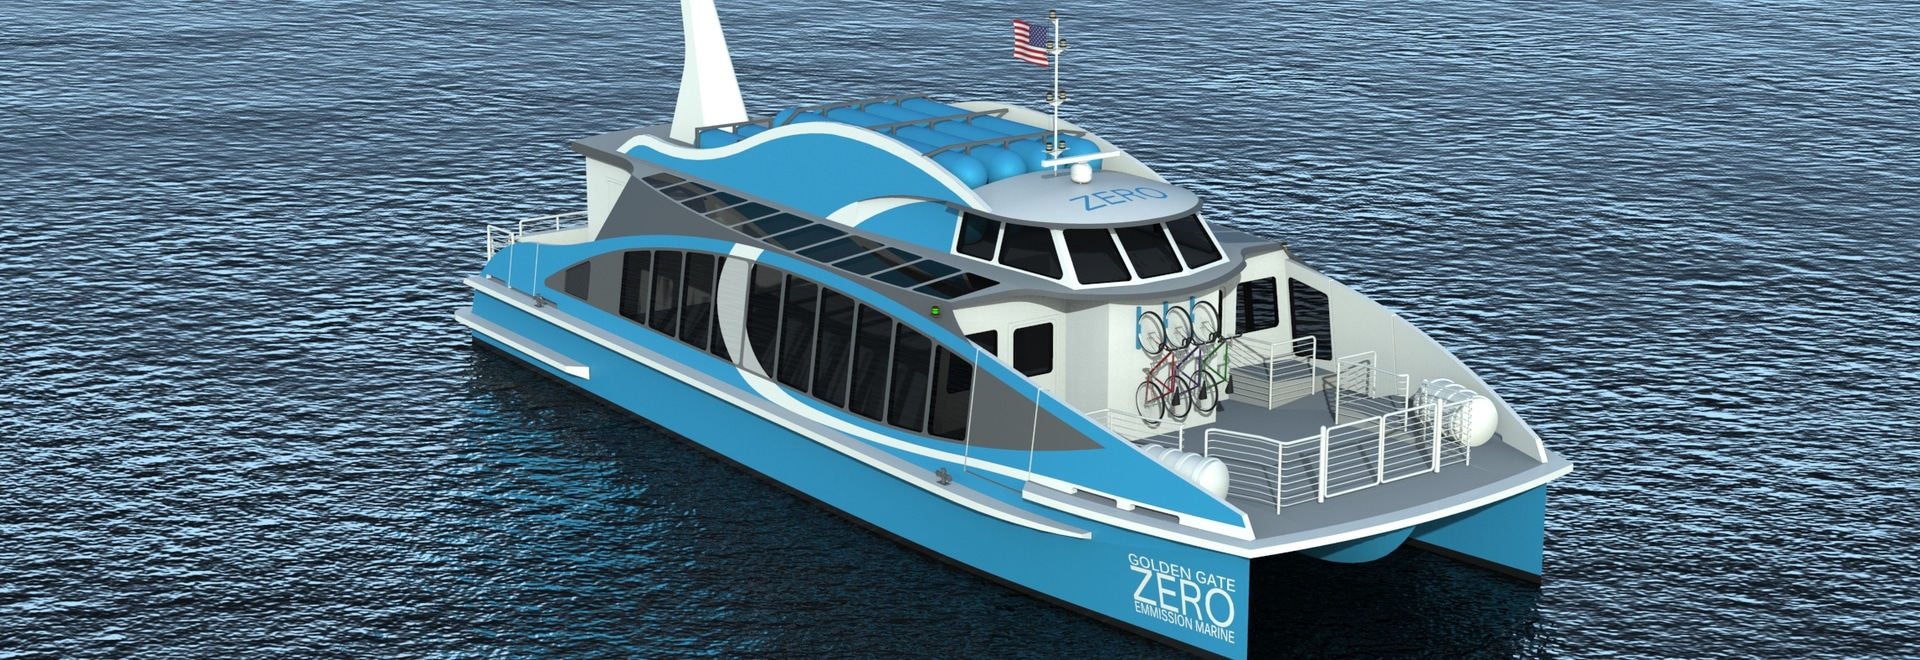 Construction of first-of-its-kind hydrogen fuel cell boat commences